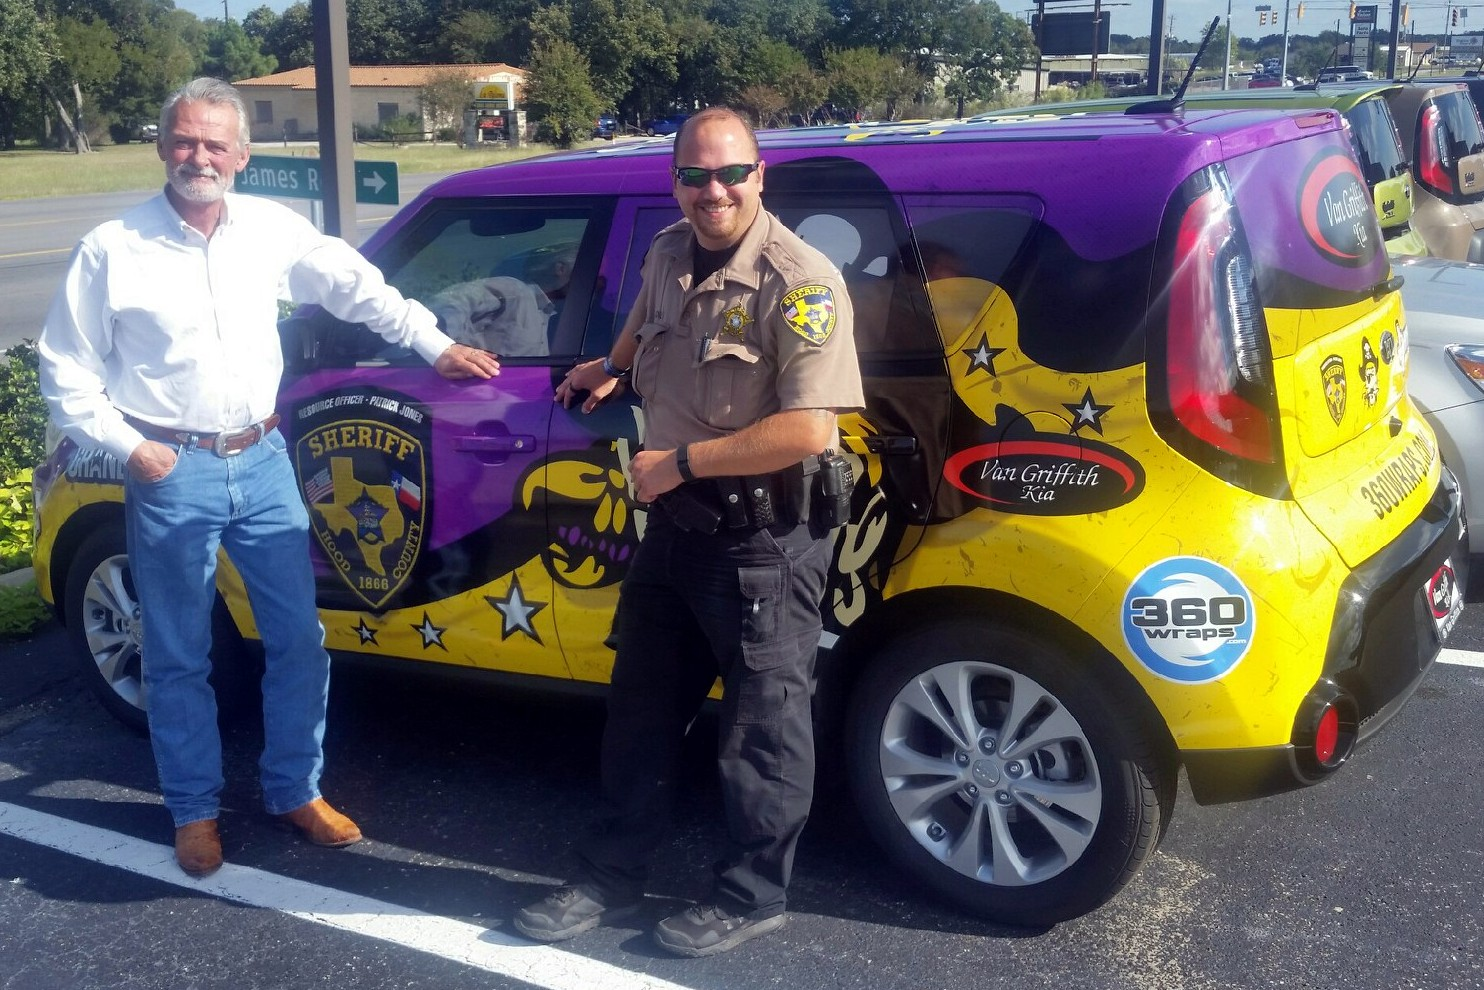 two smiling men next to a purple and gold car